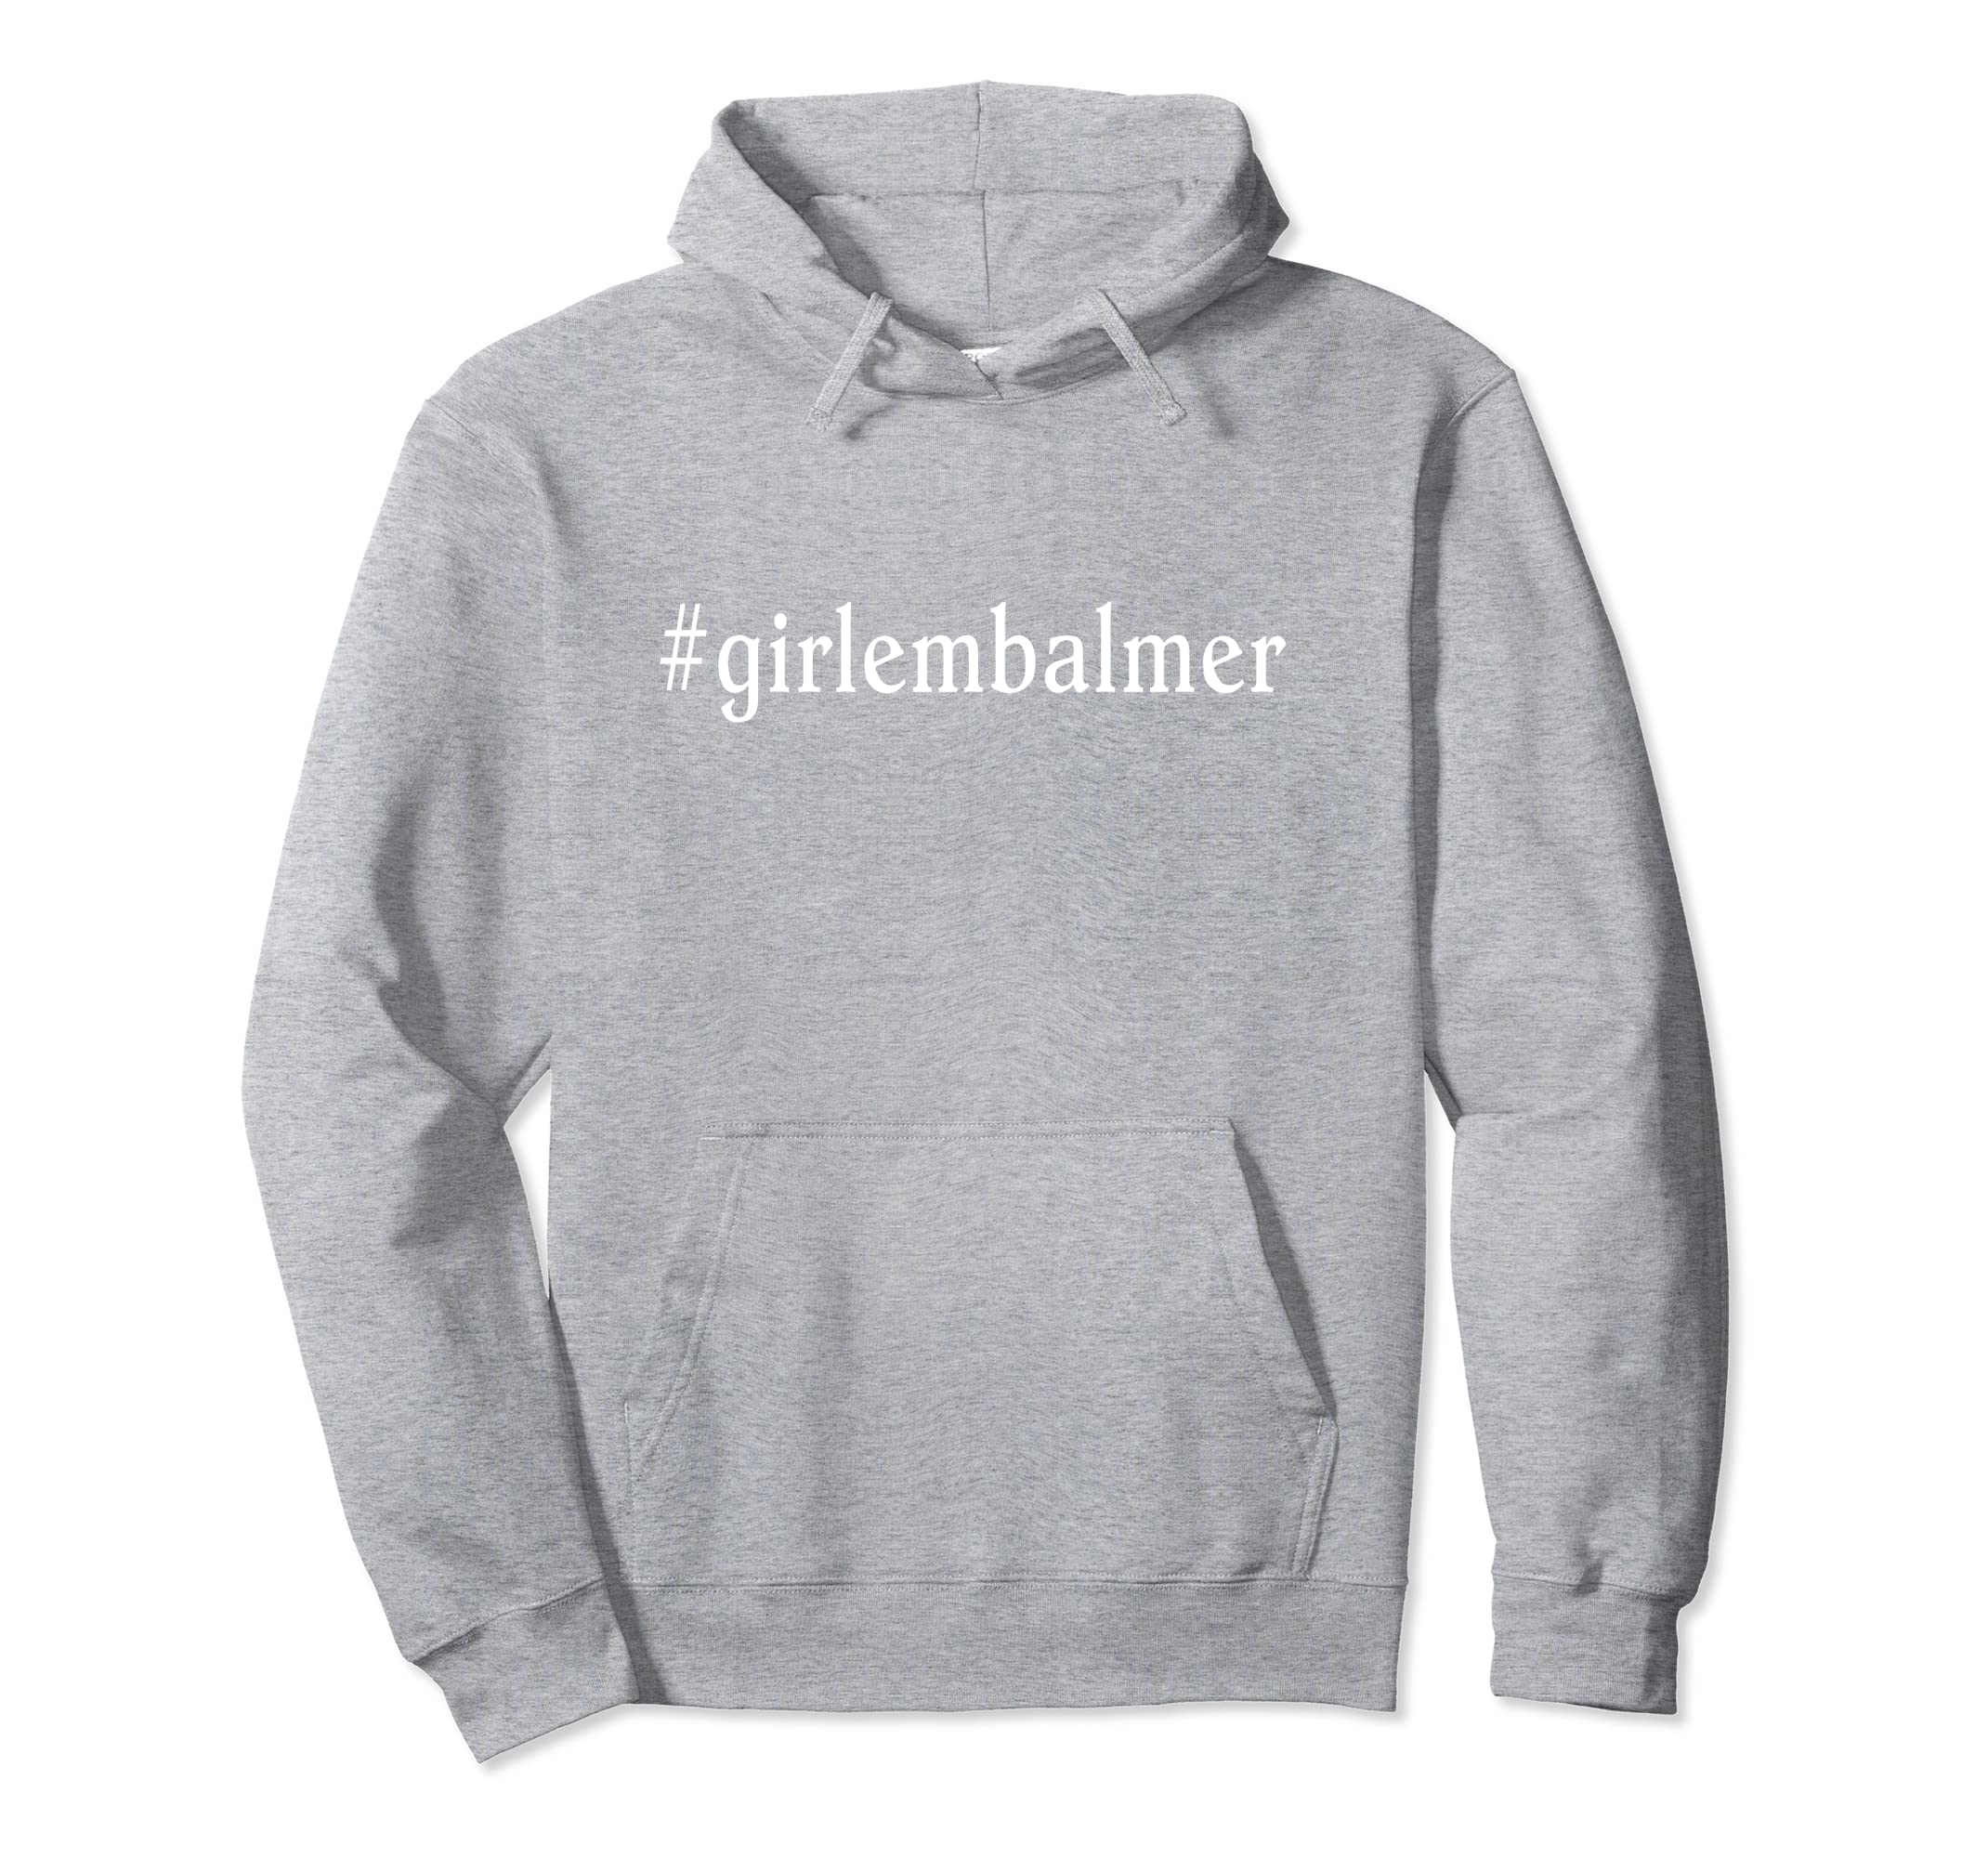 #girlembalmer Embalmer and Mortician Gift Hoodie for Women- TPT